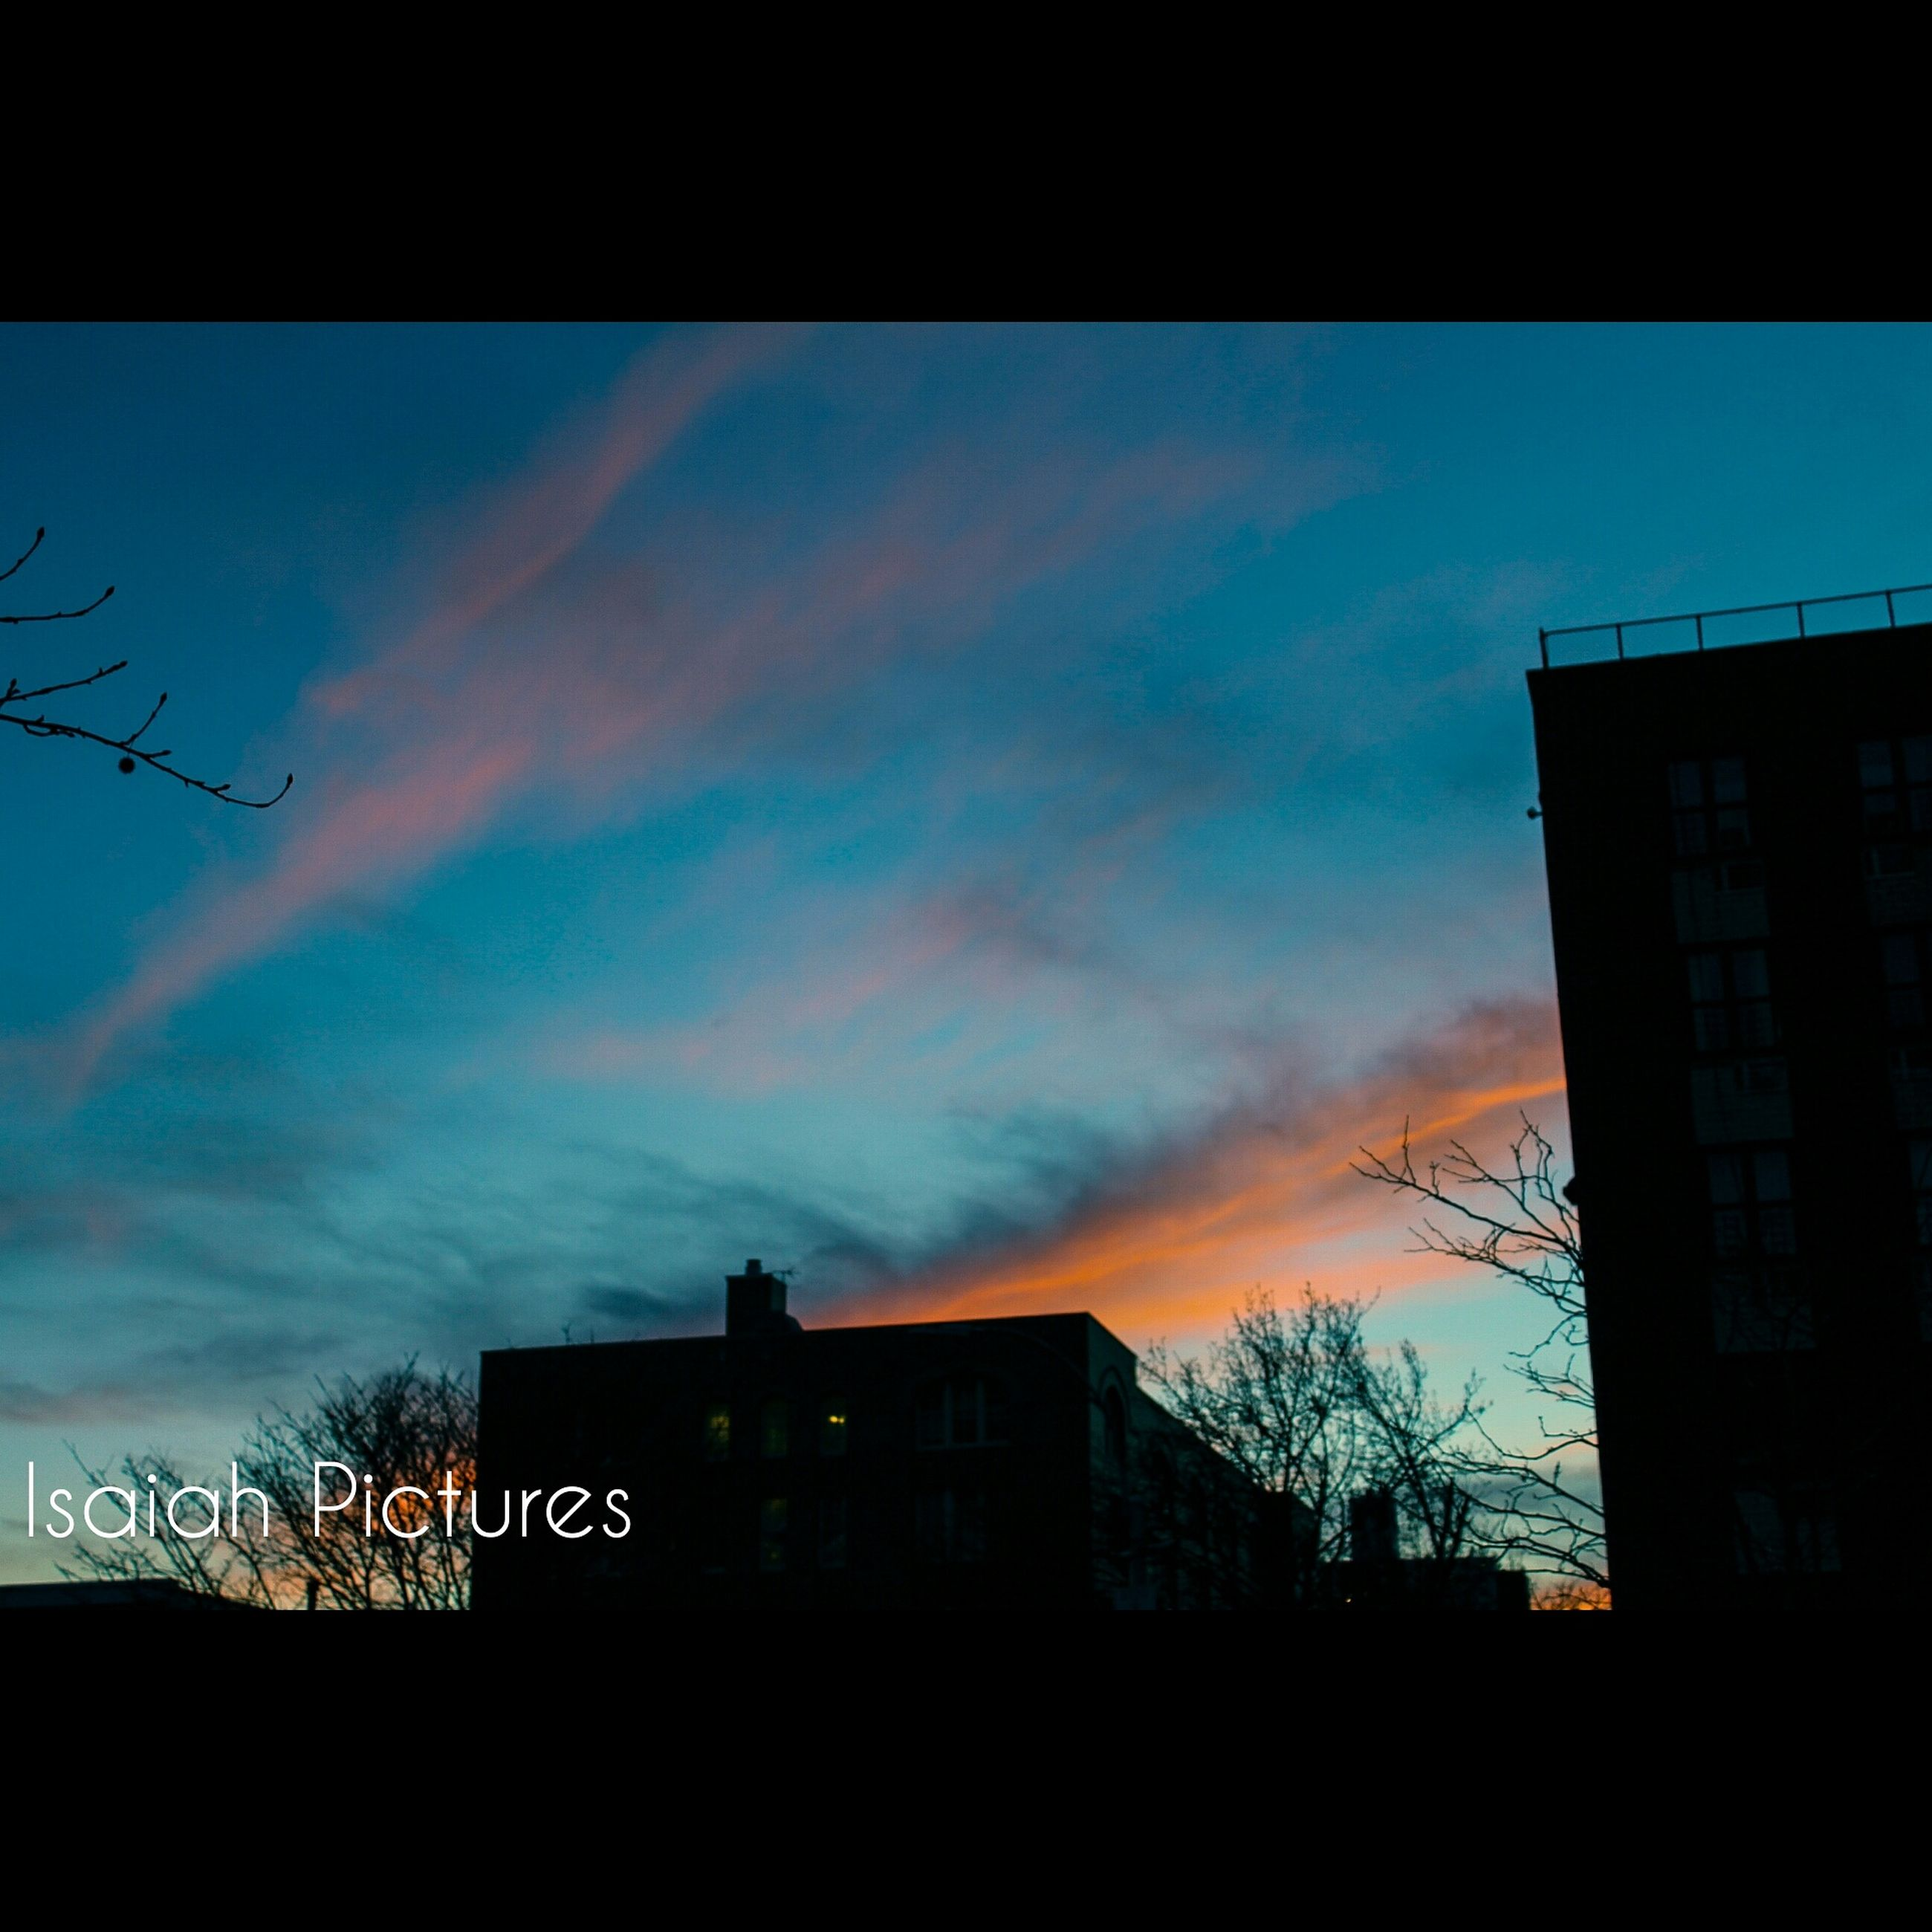 building exterior, architecture, built structure, silhouette, sky, sunset, low angle view, cloud - sky, city, building, residential structure, house, residential building, dusk, cloud, tree, bare tree, no people, outdoors, cloudy